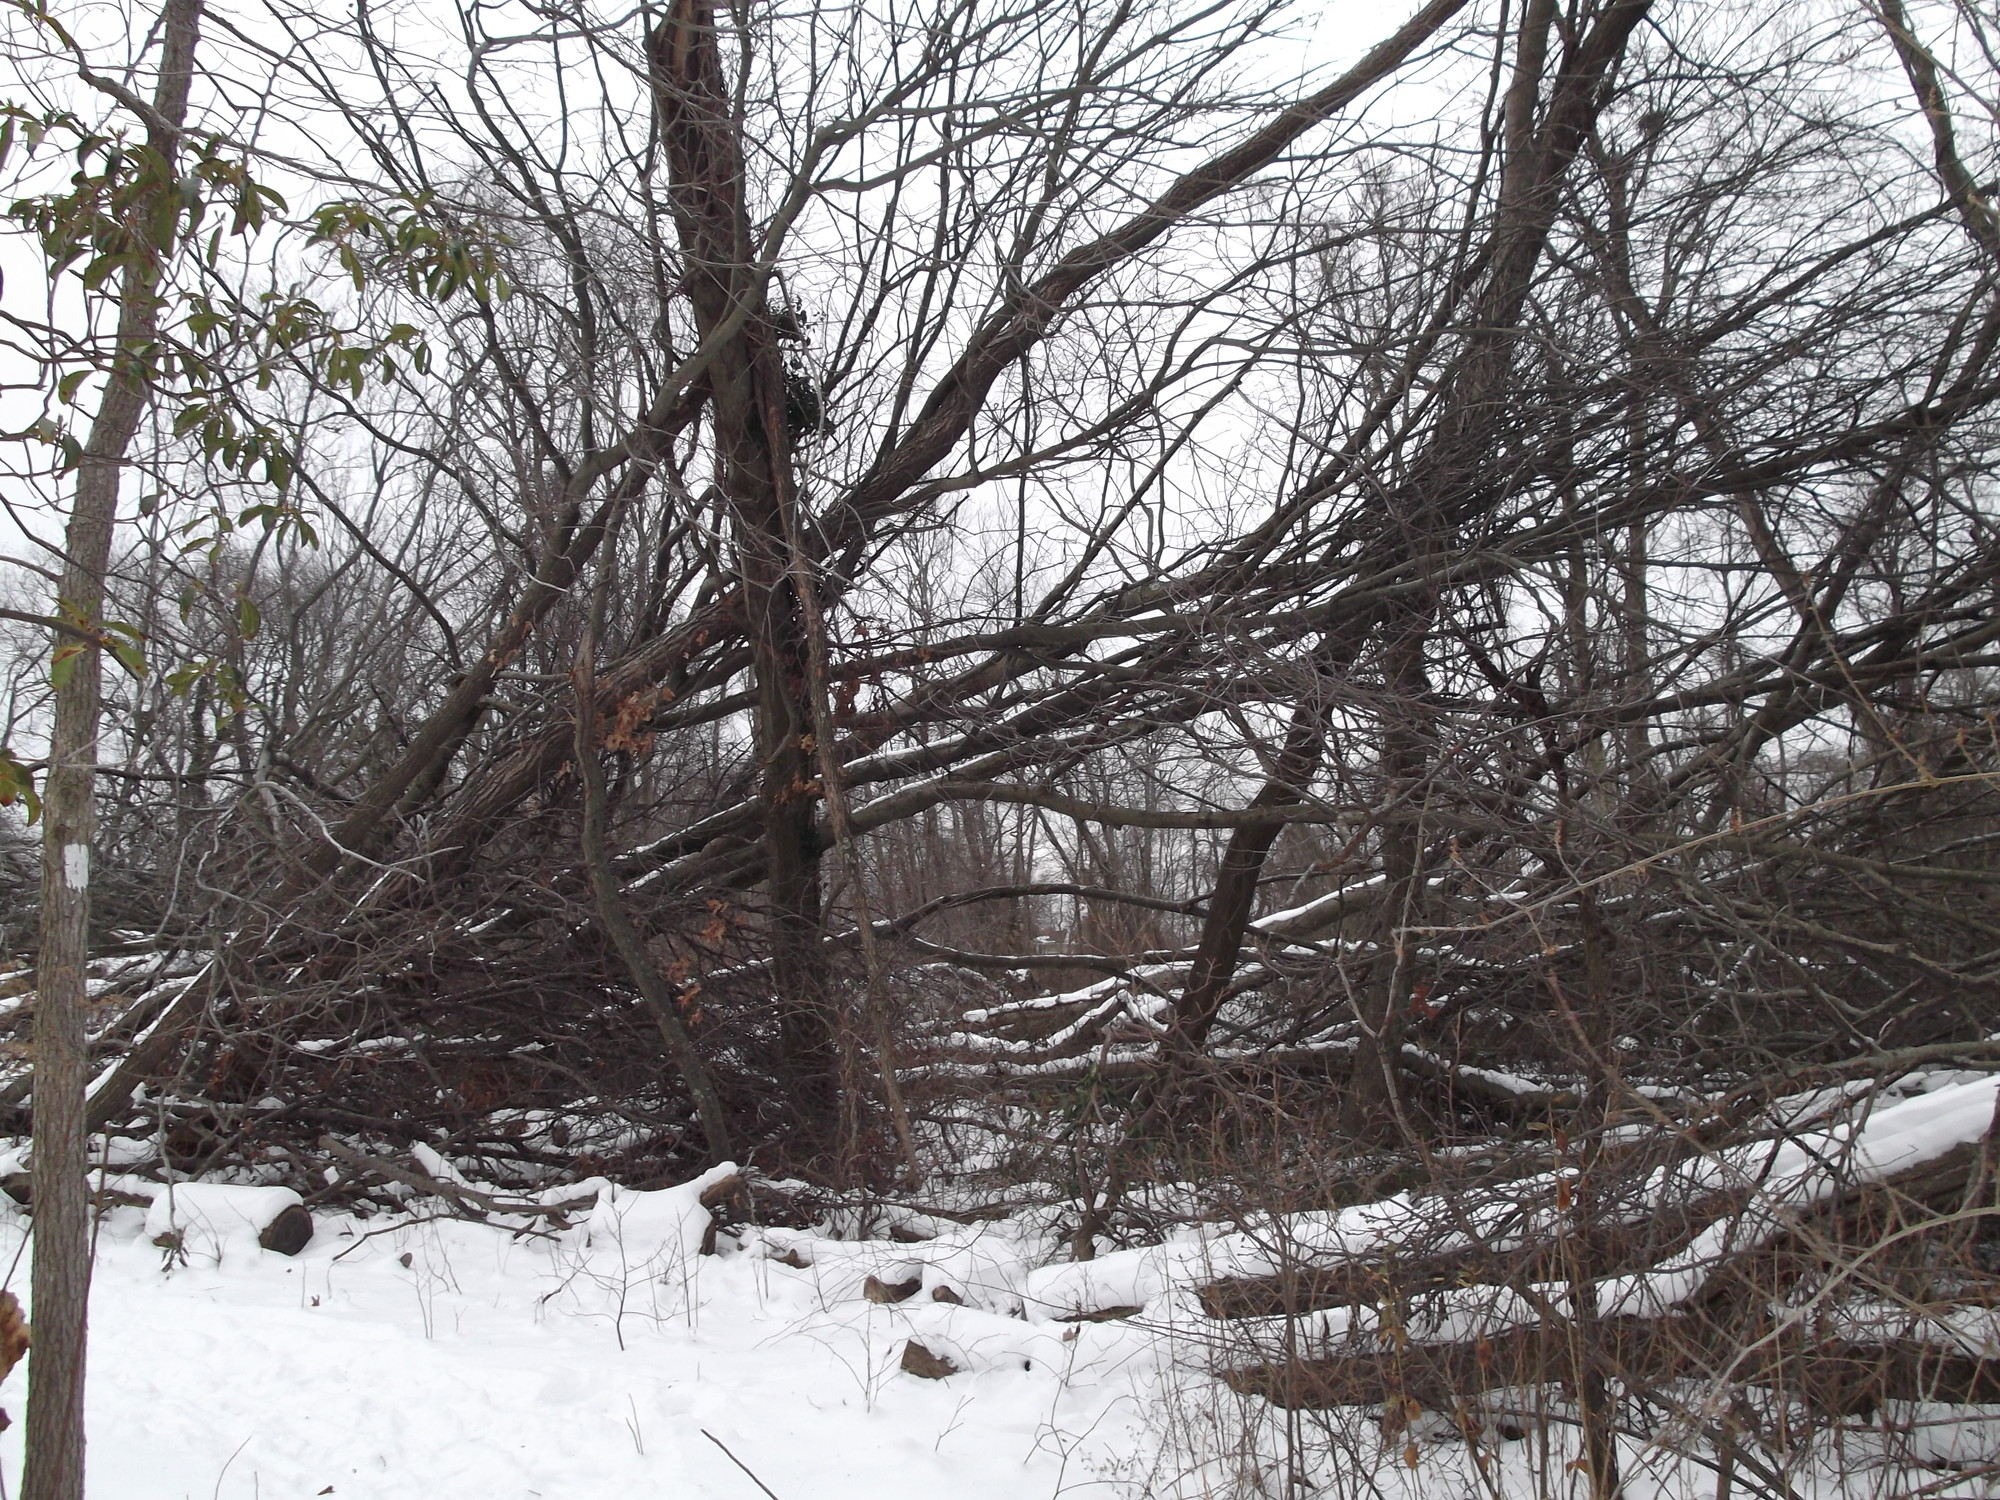 Residents have expressed concerns about the downed trees at the preserve, as well as vandalism and drug use there.